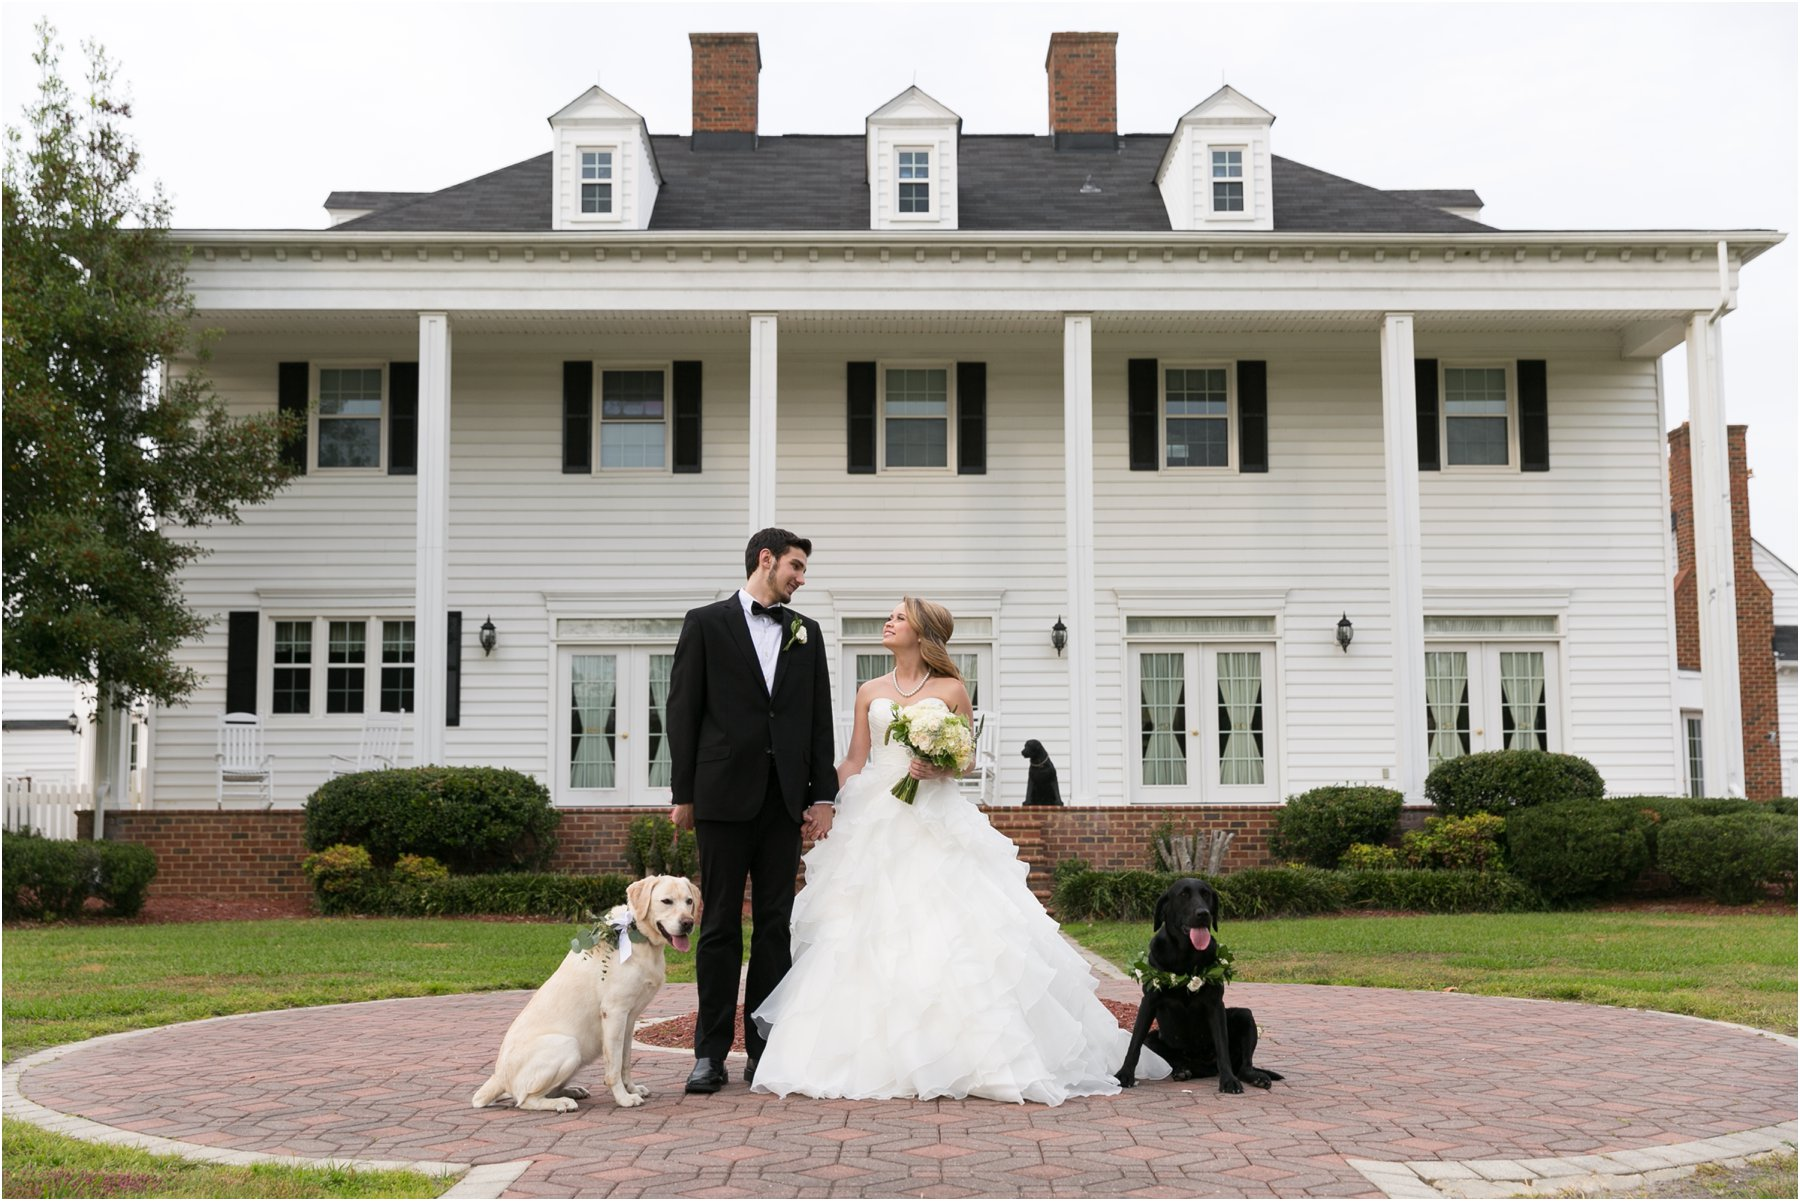 Holly_Ridge_Manor_Wedding_Photography_Jessica_Ryan_Photography_virginia_virginia_beach_0244